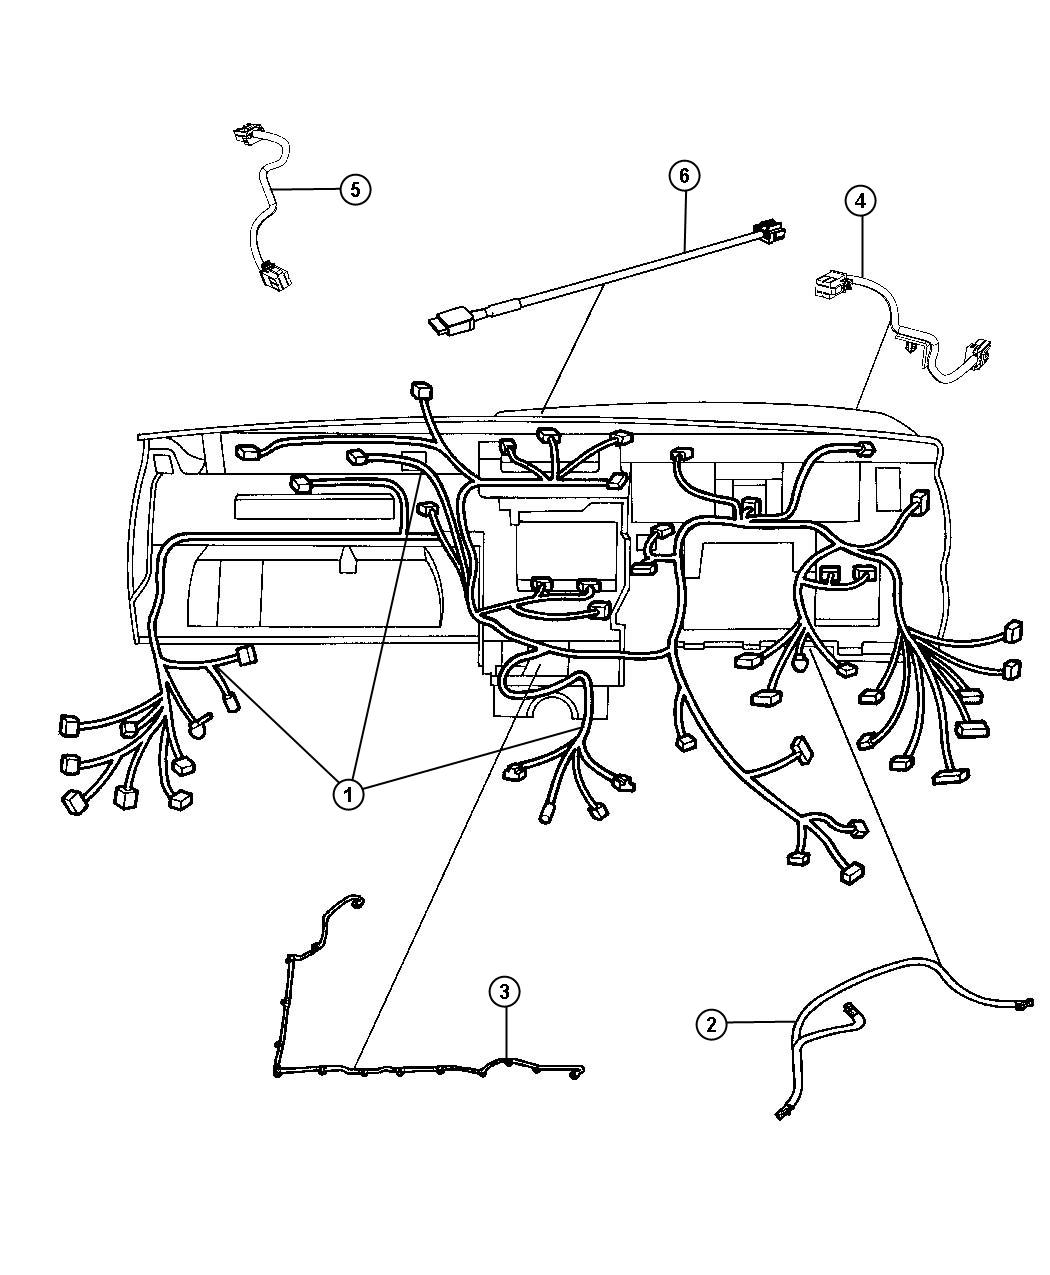 i2275319 Jeep Microphone Wiring Diagram on microphone lip-sync, microphone filter, microphone with cord, microphone on ipad, microphone button, microphone drawings, microphone craft, microphone tumblr, microphone connector, microphone circuit, microphone wiring guide, microphone jack wiring, microphone plug wiring, microphone cutie mark, microphone illustration, microphone cable wiring, microphone animation, microphone and amplifier set, microphone connection diagram, microphone patterns,